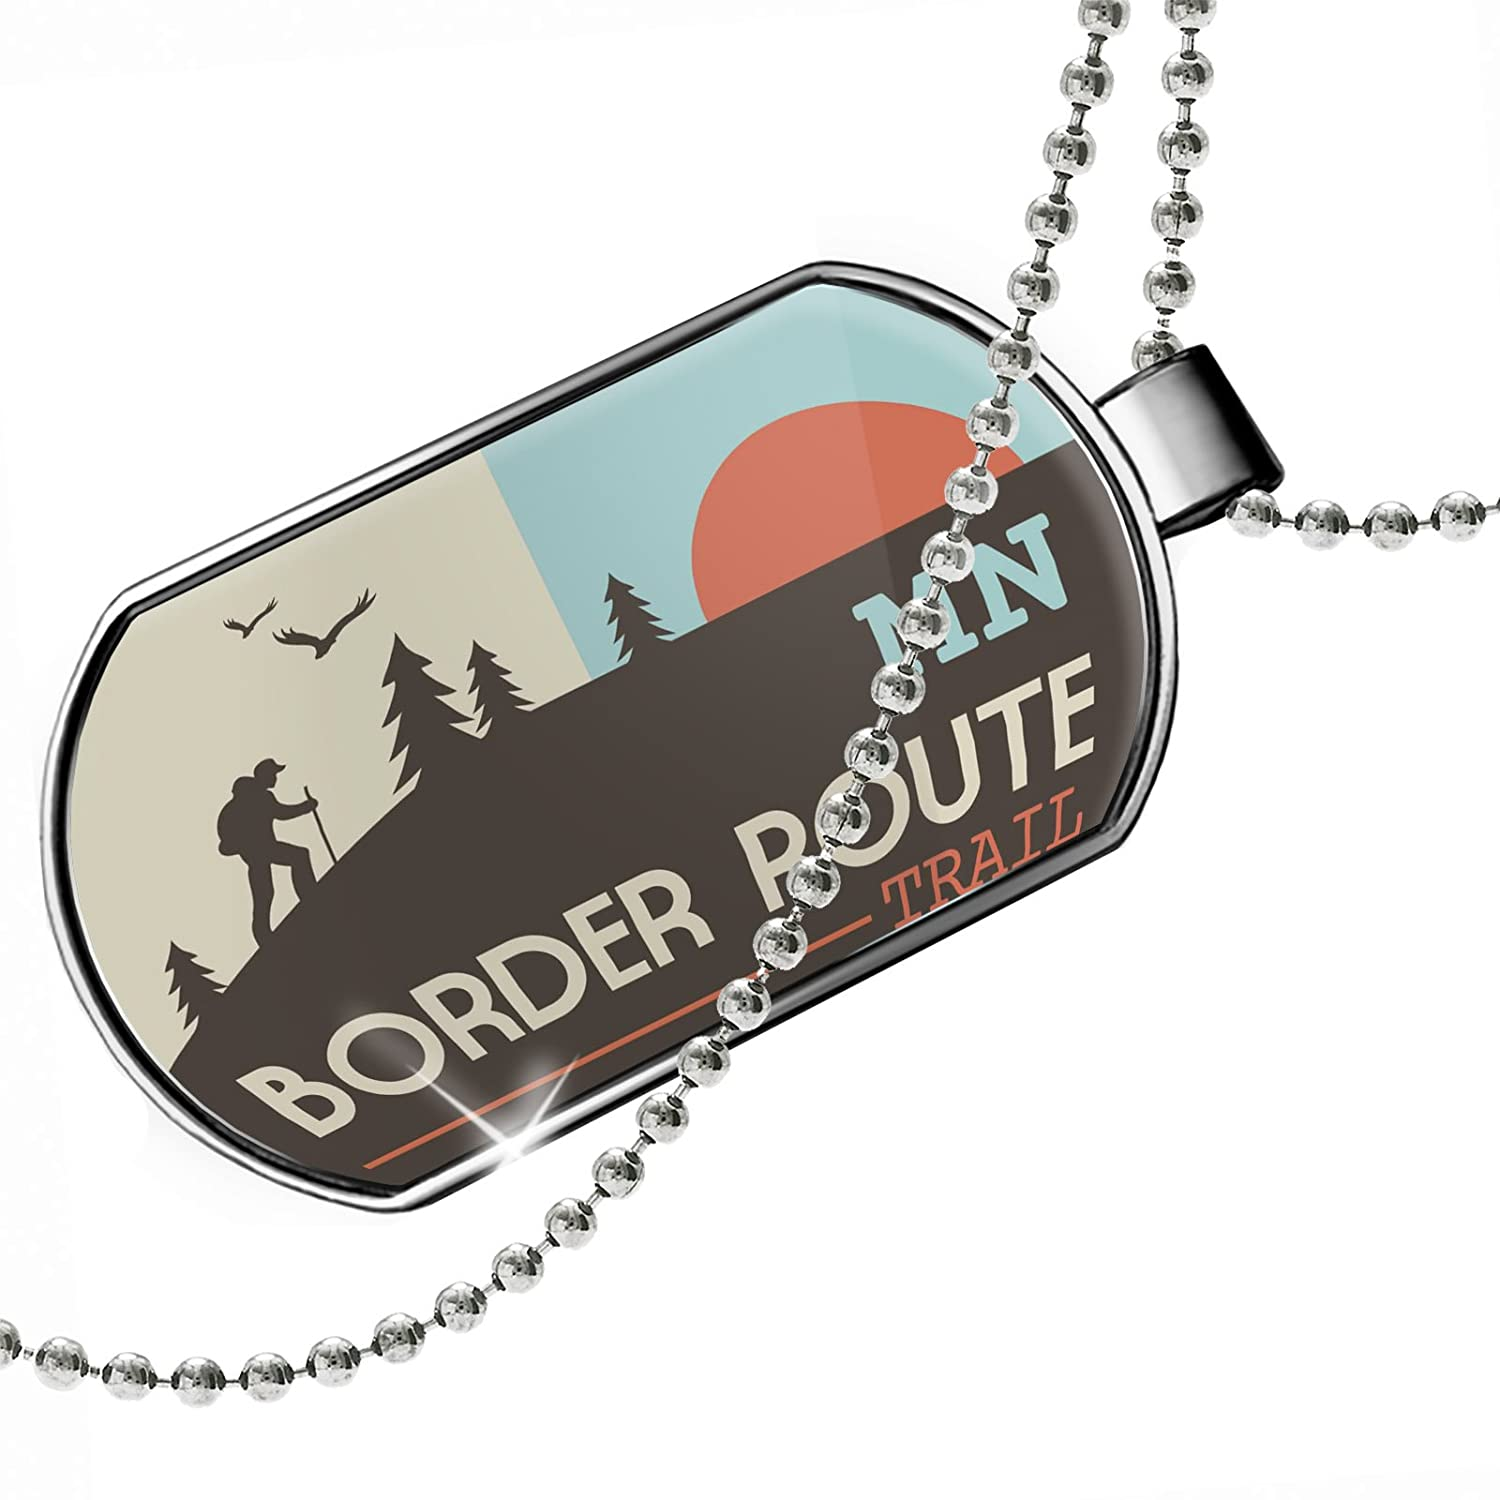 Minnesota Dogtag Necklace NEONBLOND Personalized Name Engraved US Hiking Trails Border Route Trail